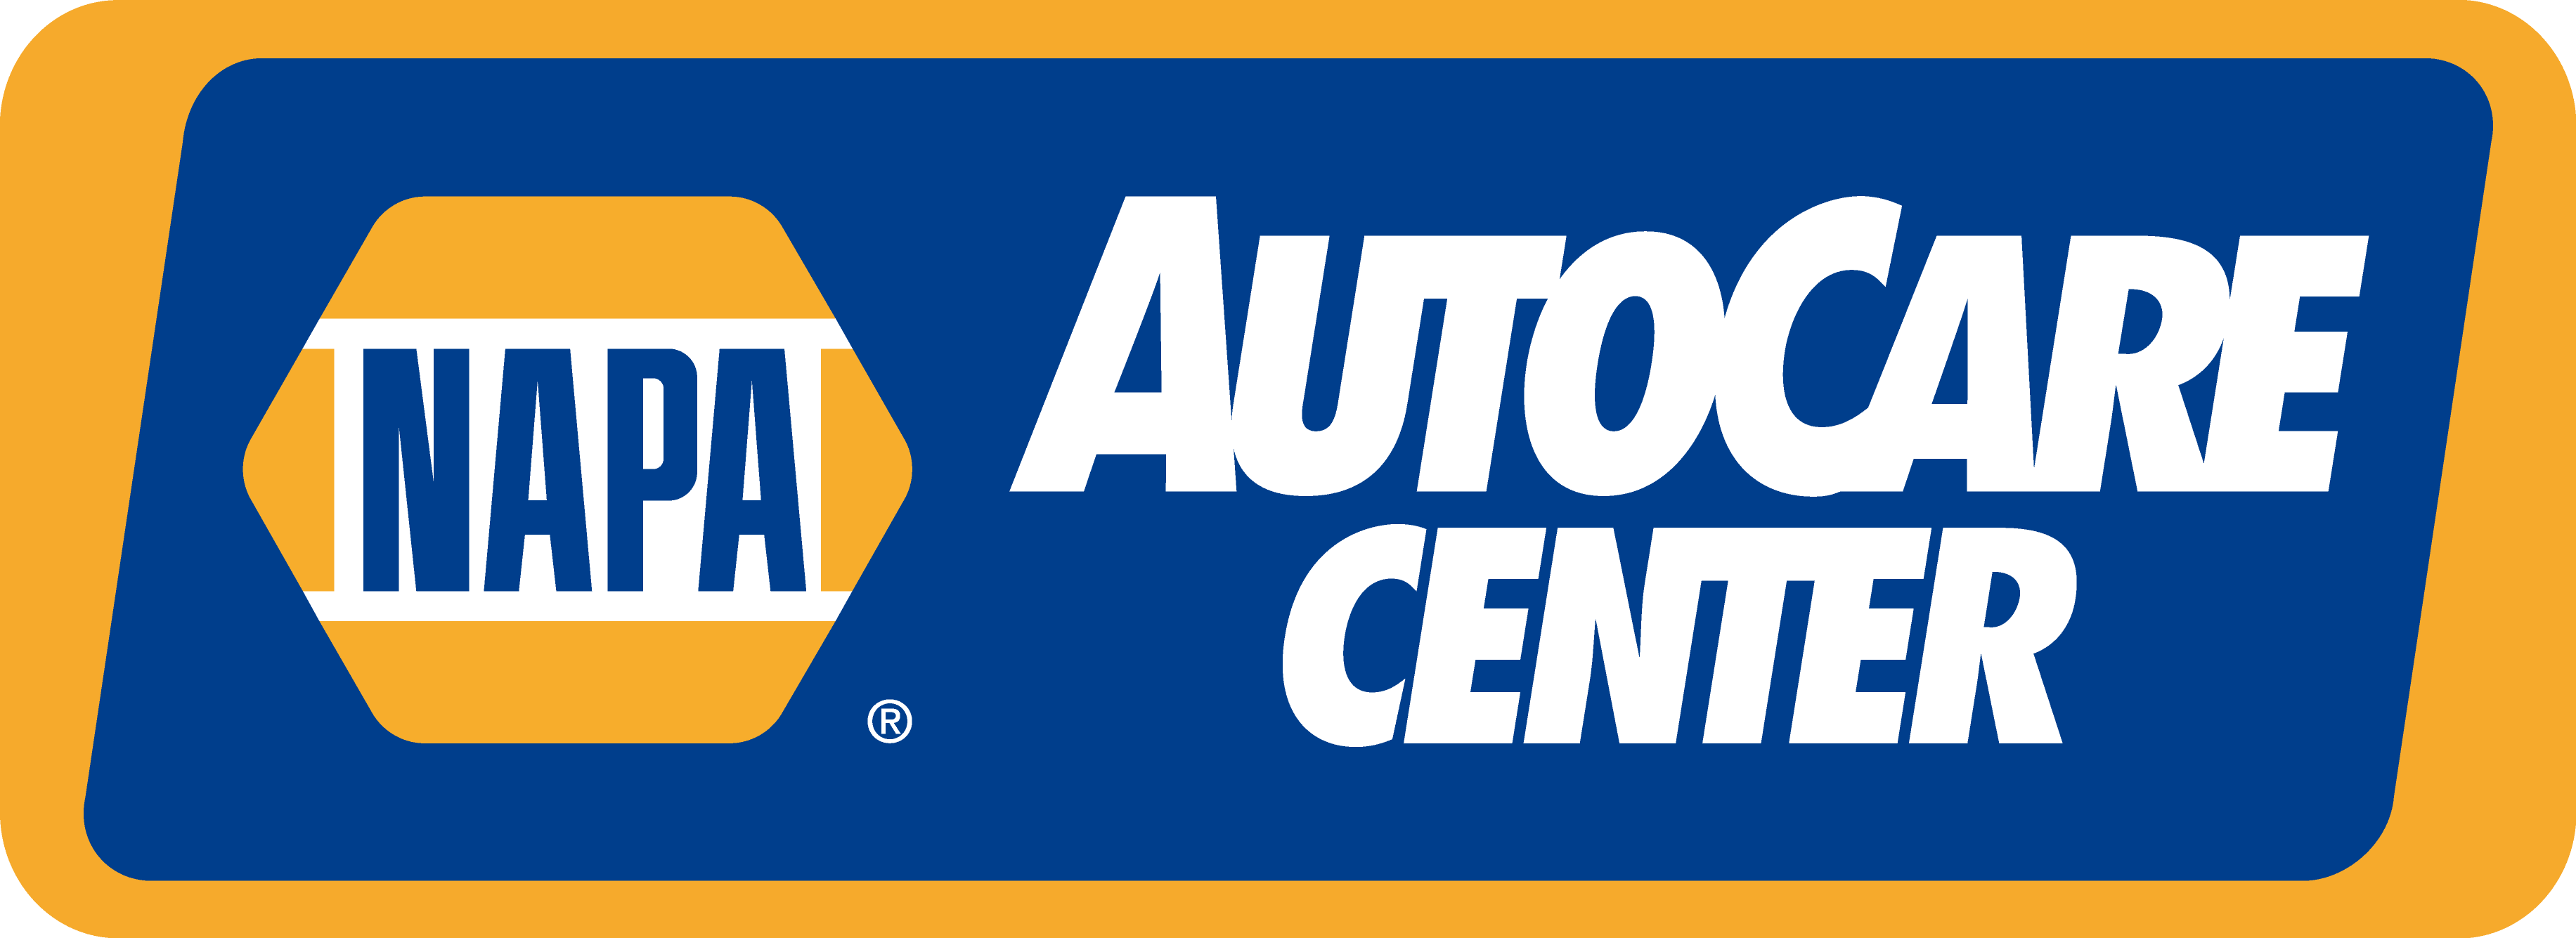 NAPA Auto Care Center, Best Way Automotive Service & Sales LLC, Rock Hill, SC, 29730